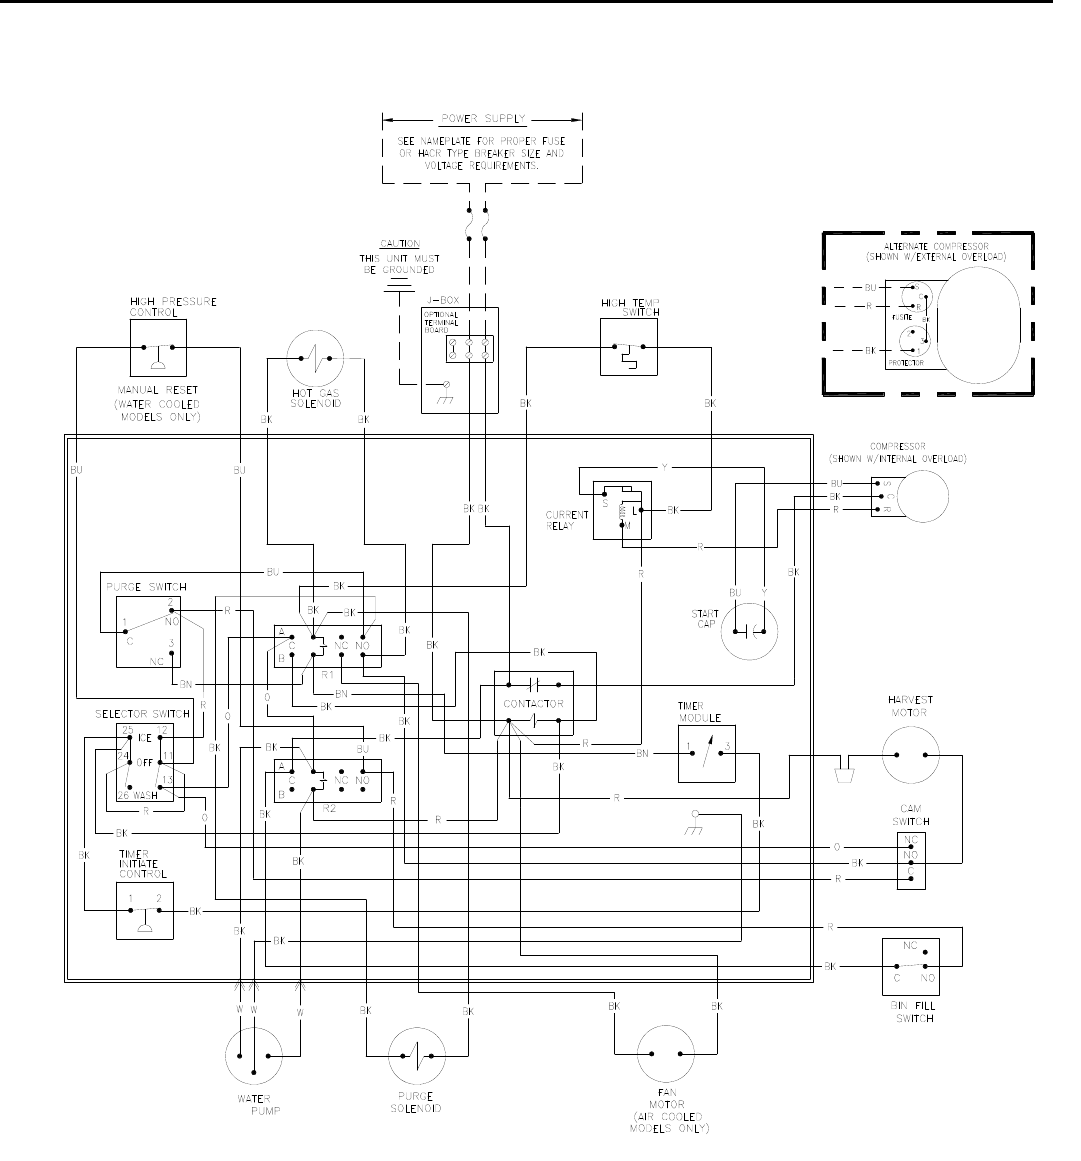 Ice O Matic Wiring Diagram Library